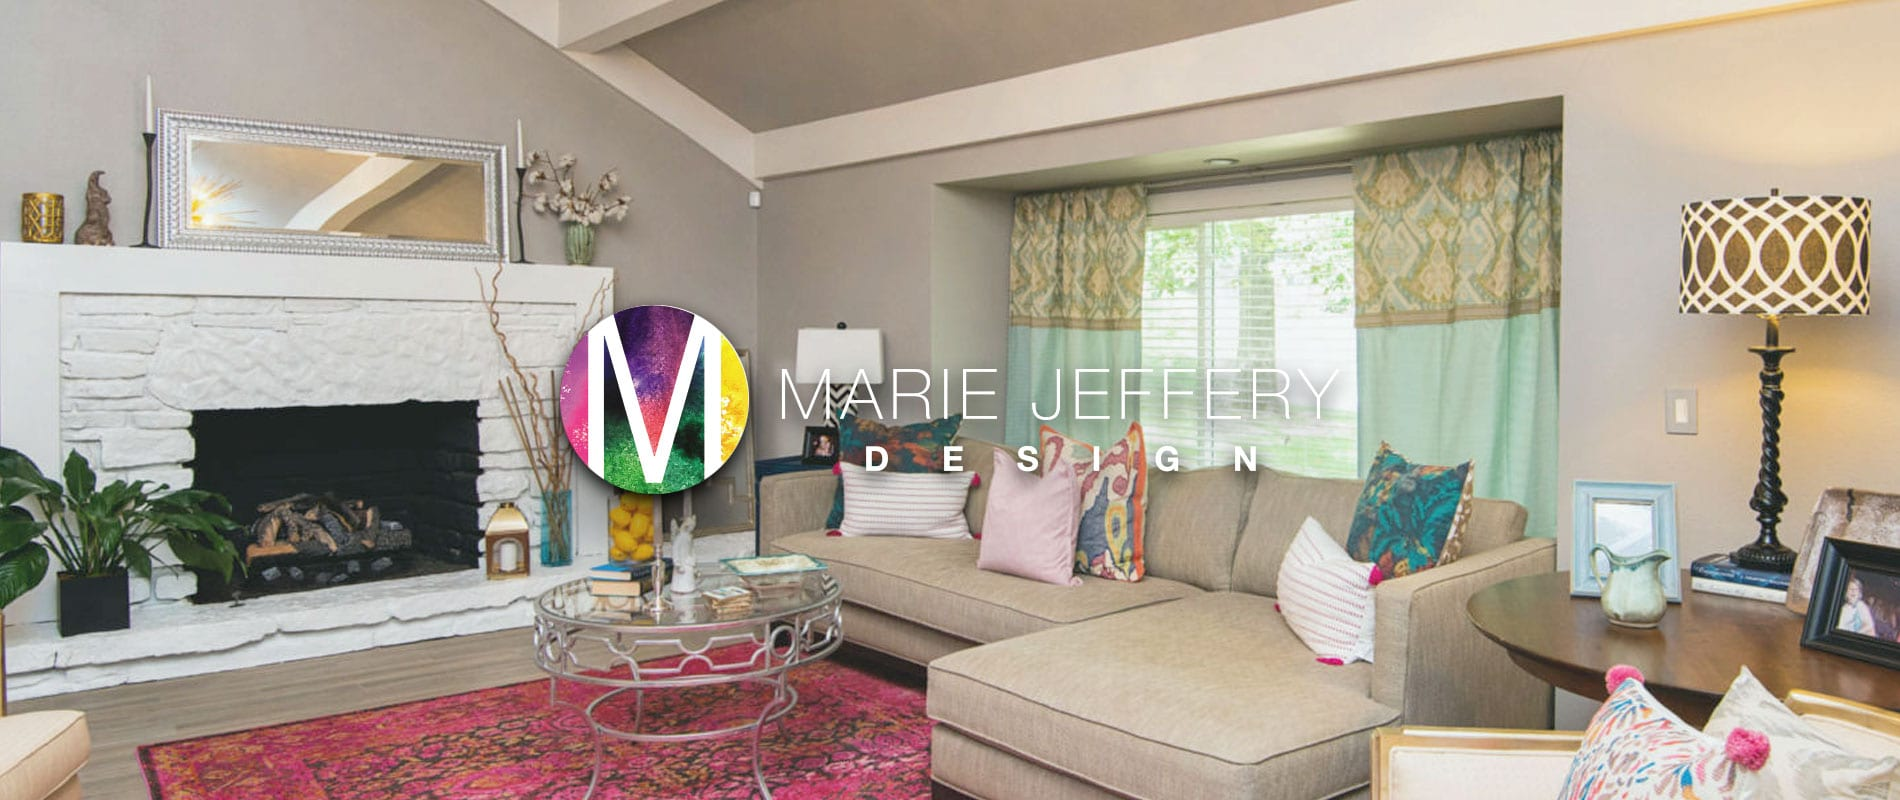 Marie Jeffrey Design Project Header